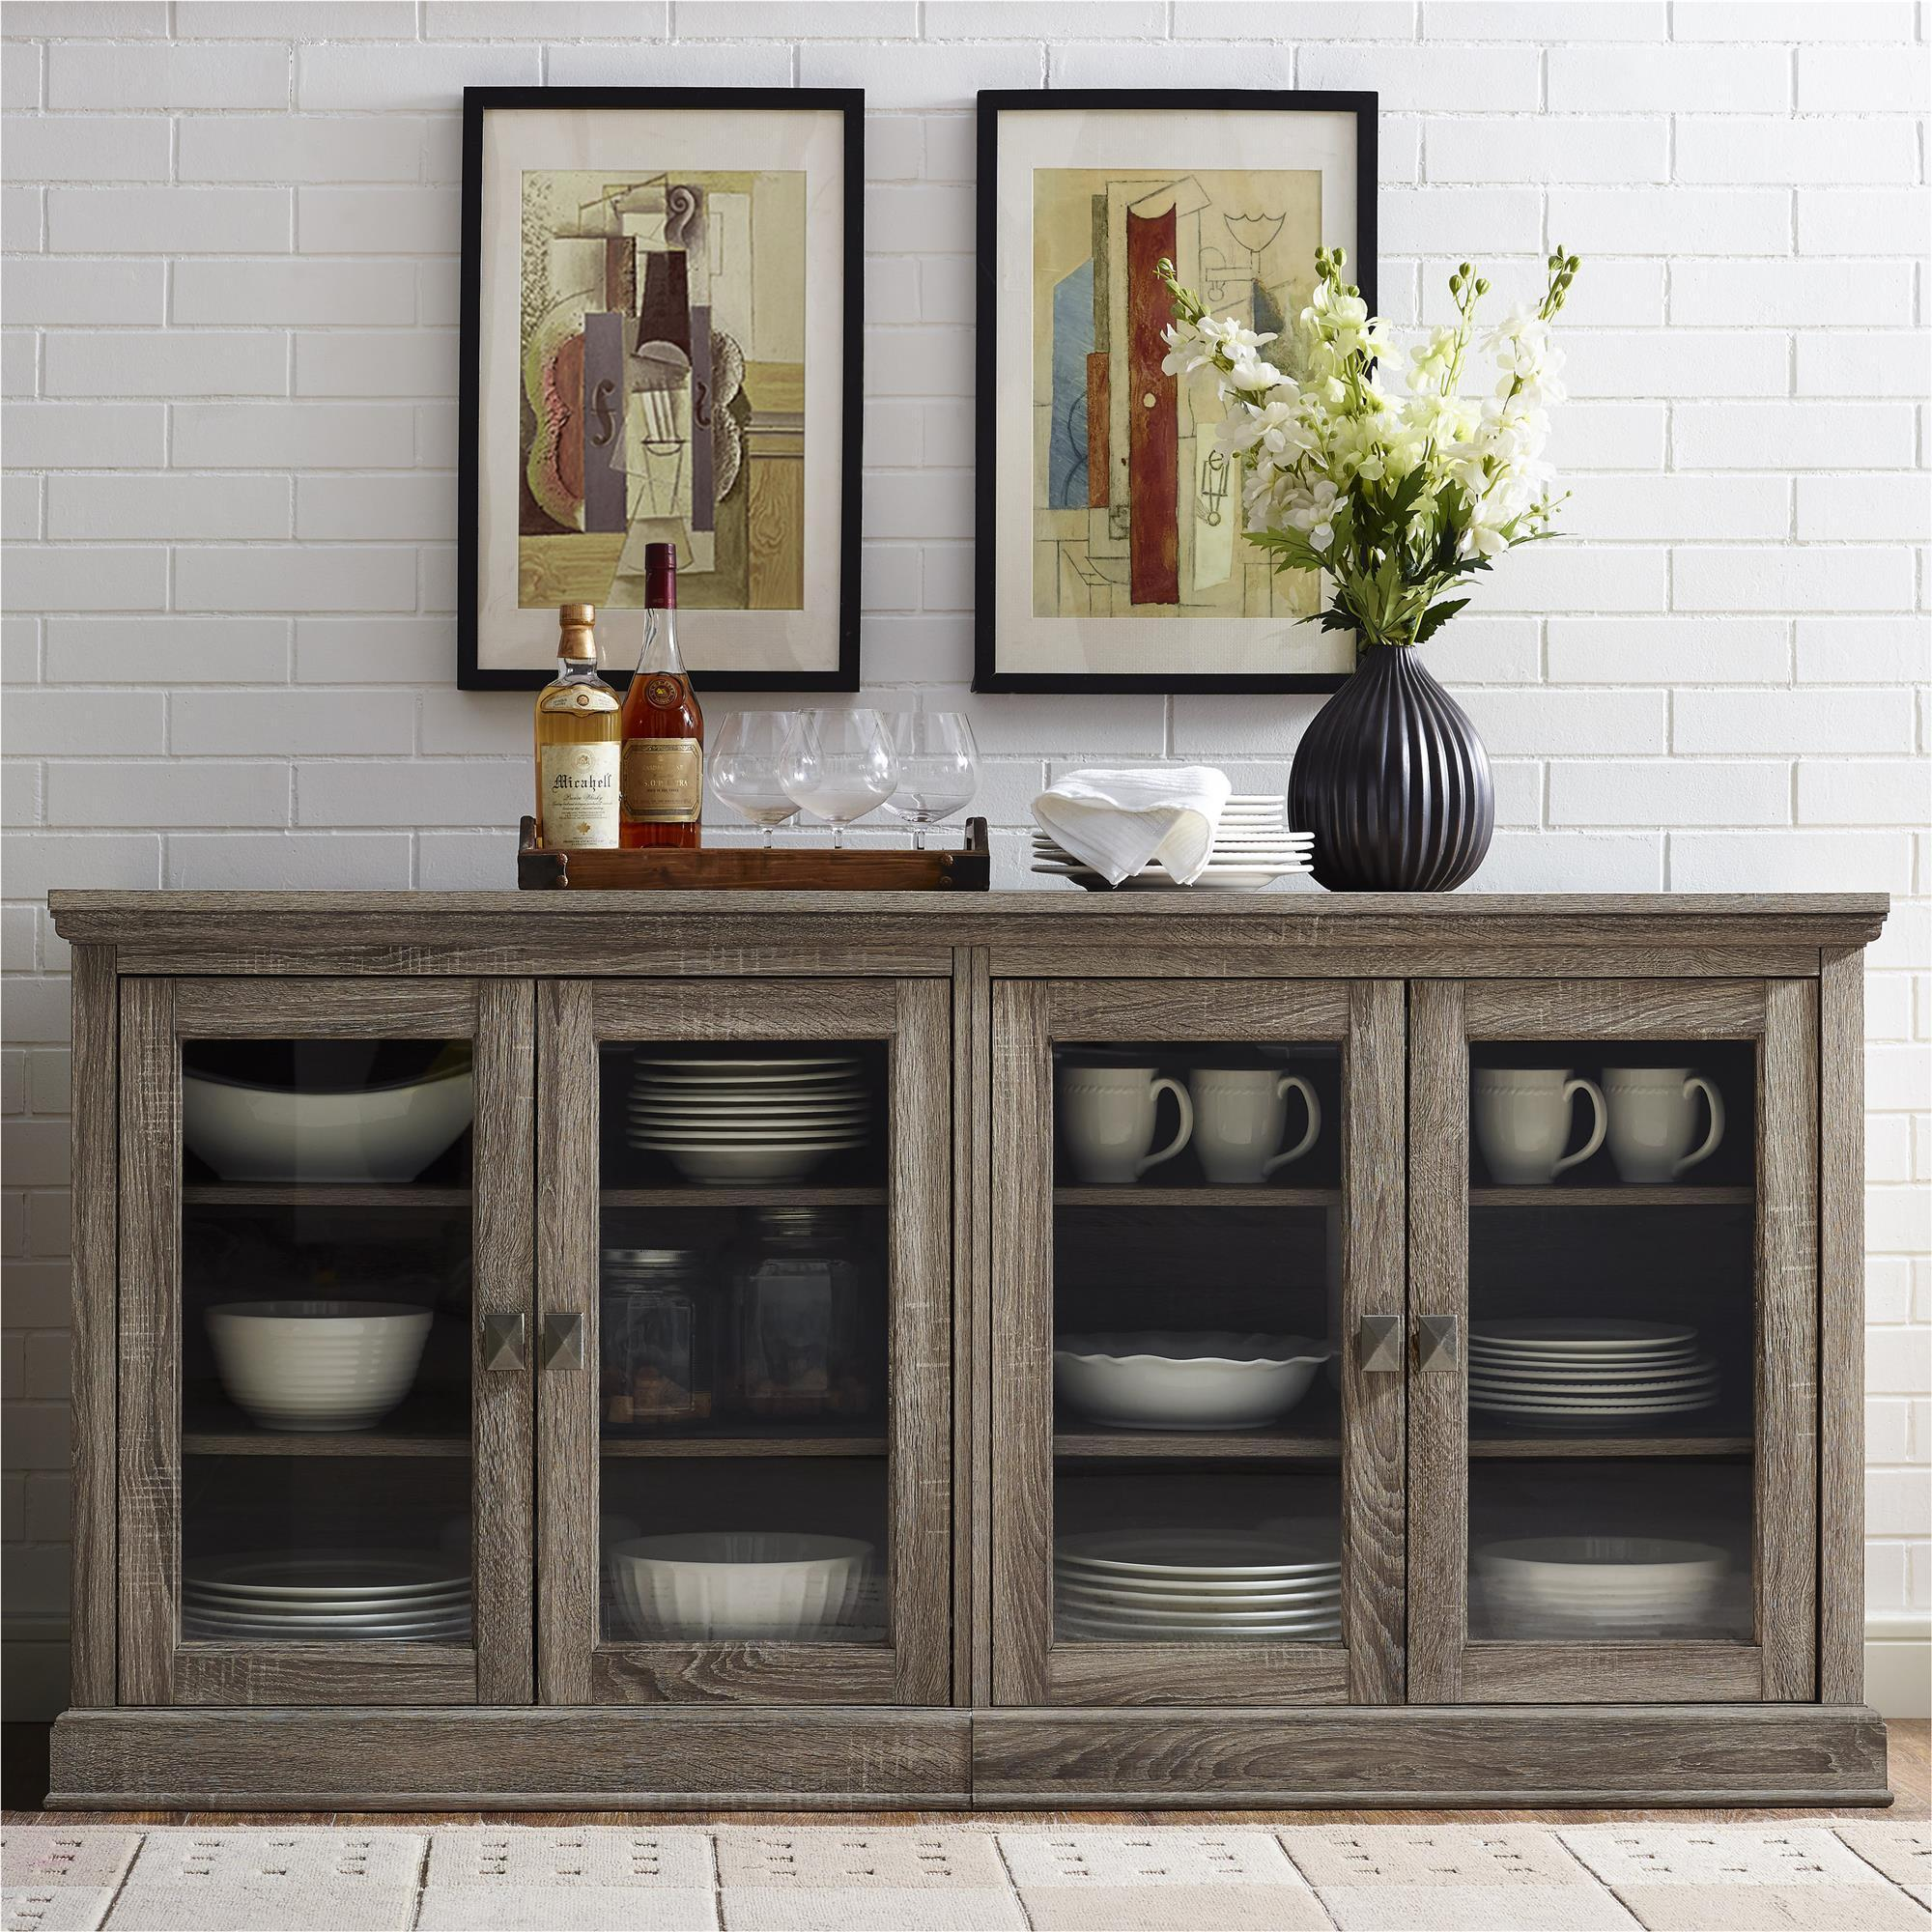 Shop Avenue Greene Adelle TV Stand With Glass Doors For TVs Up To 70   N/a    Free Shipping Today   Overstock.com   13687232